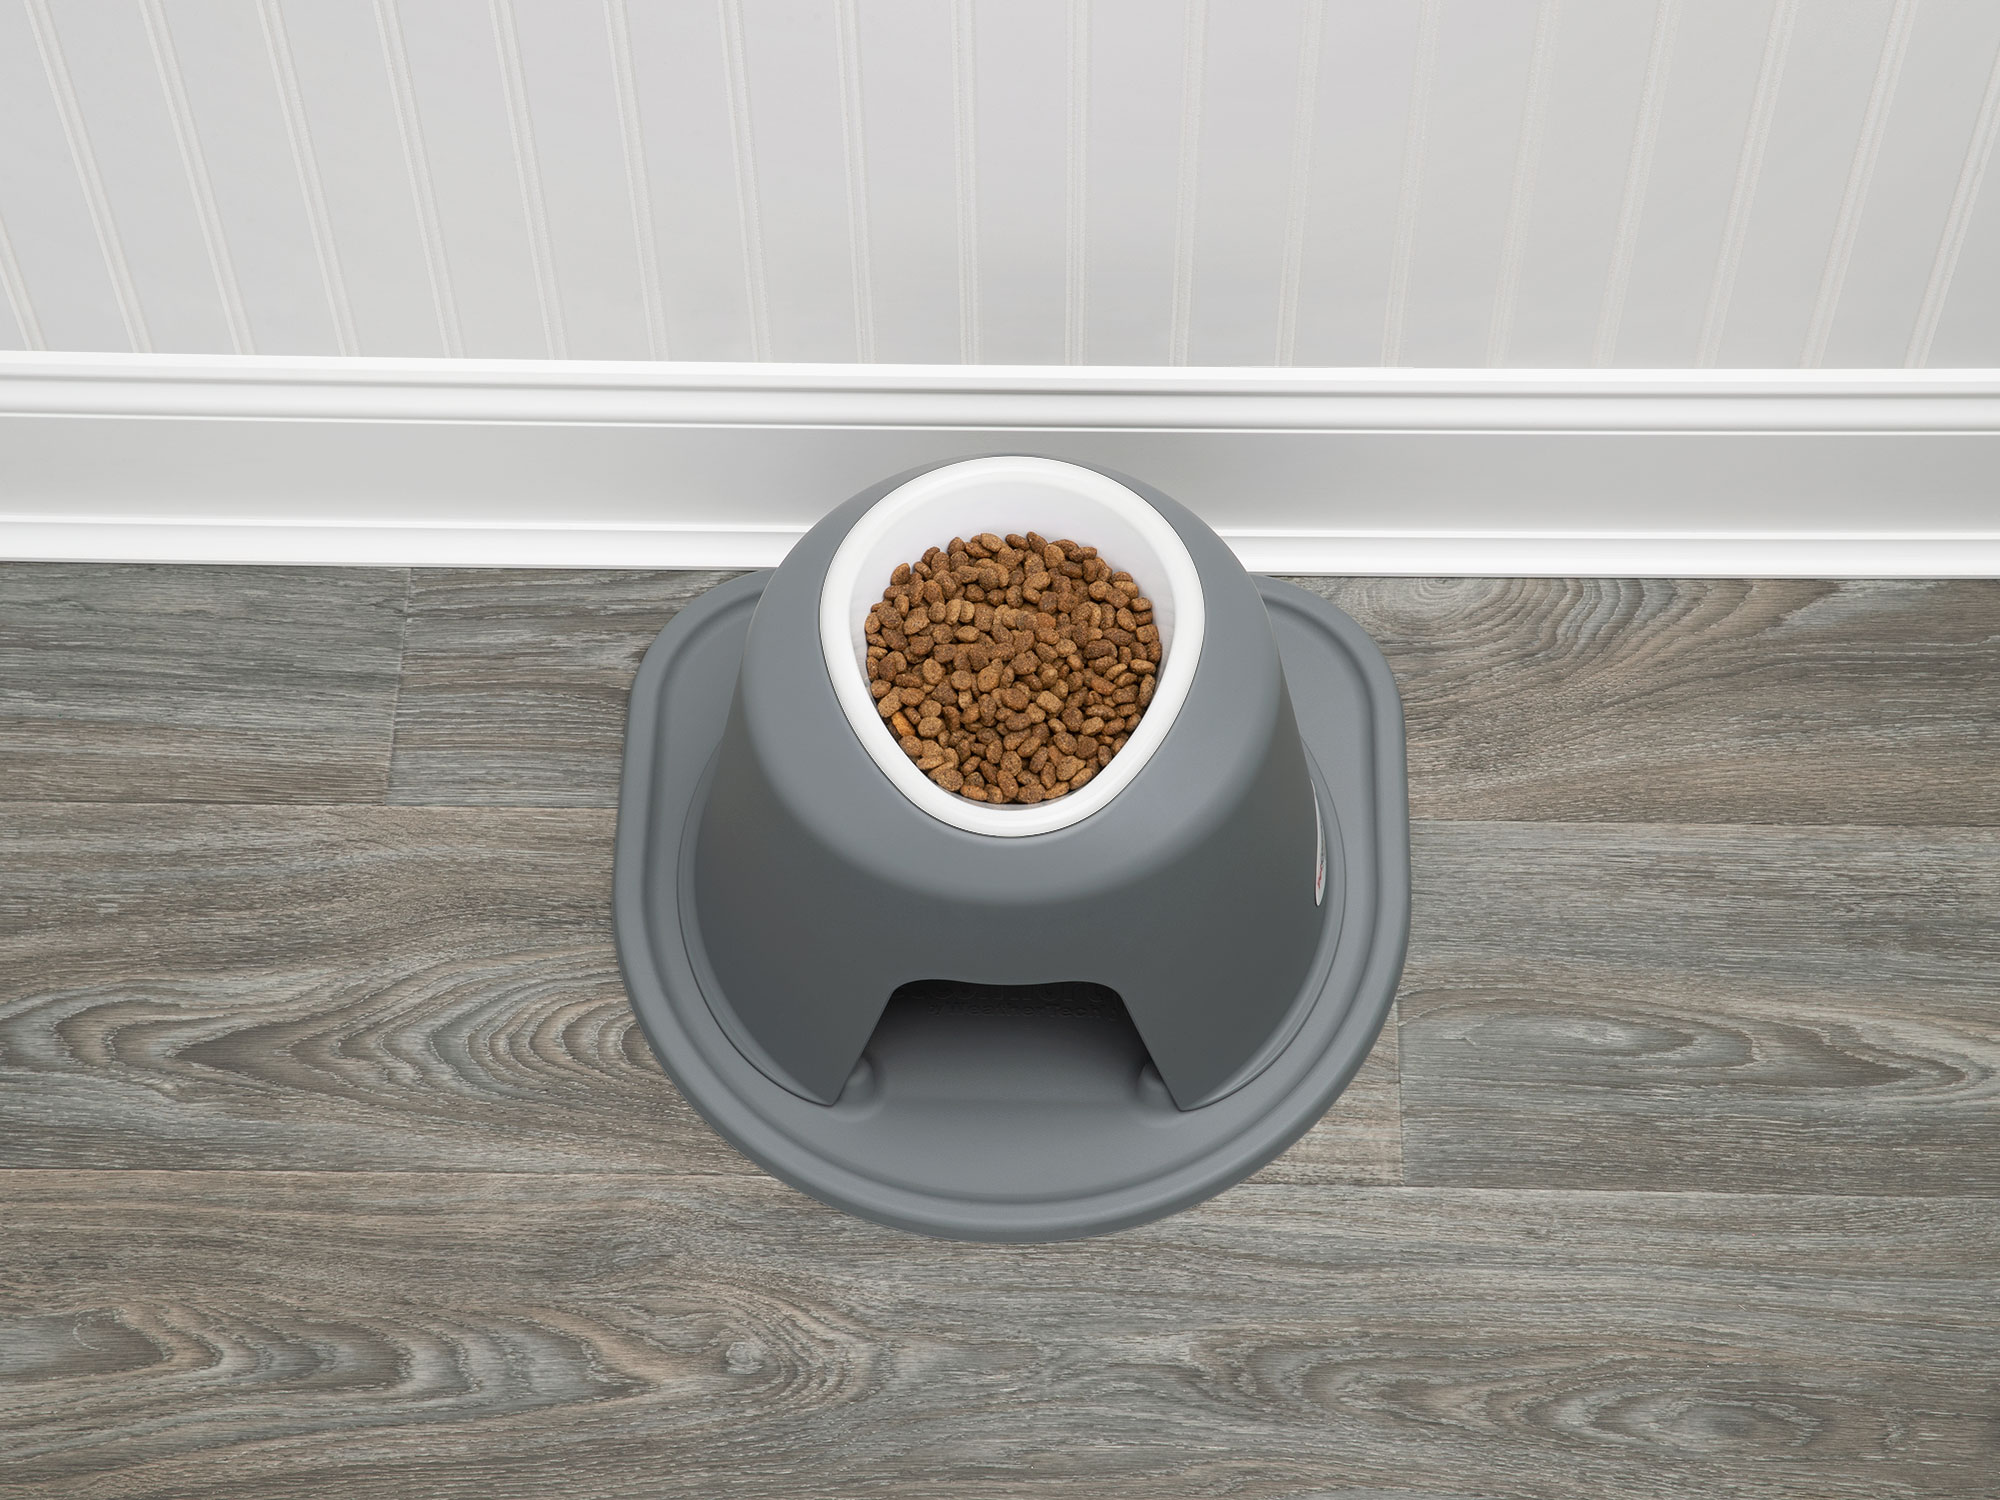 Single high dog feeding system with a plastic bowl filled with food.